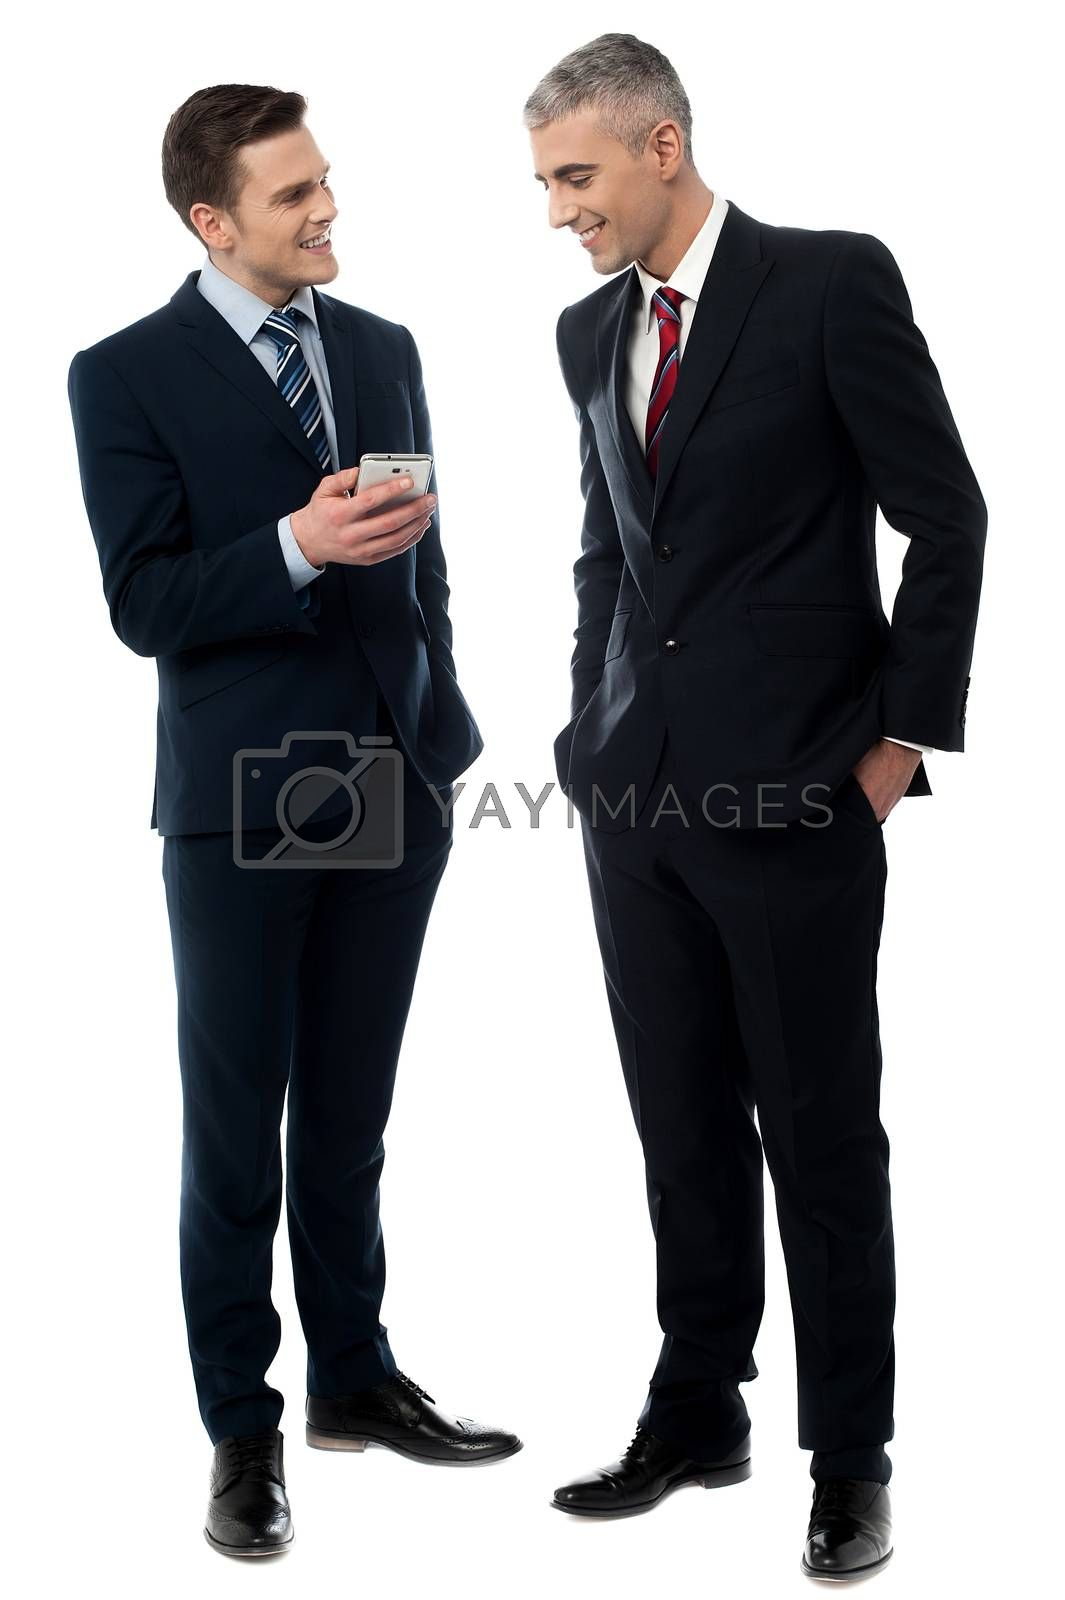 Businessmen using mobile phone by stockyimages